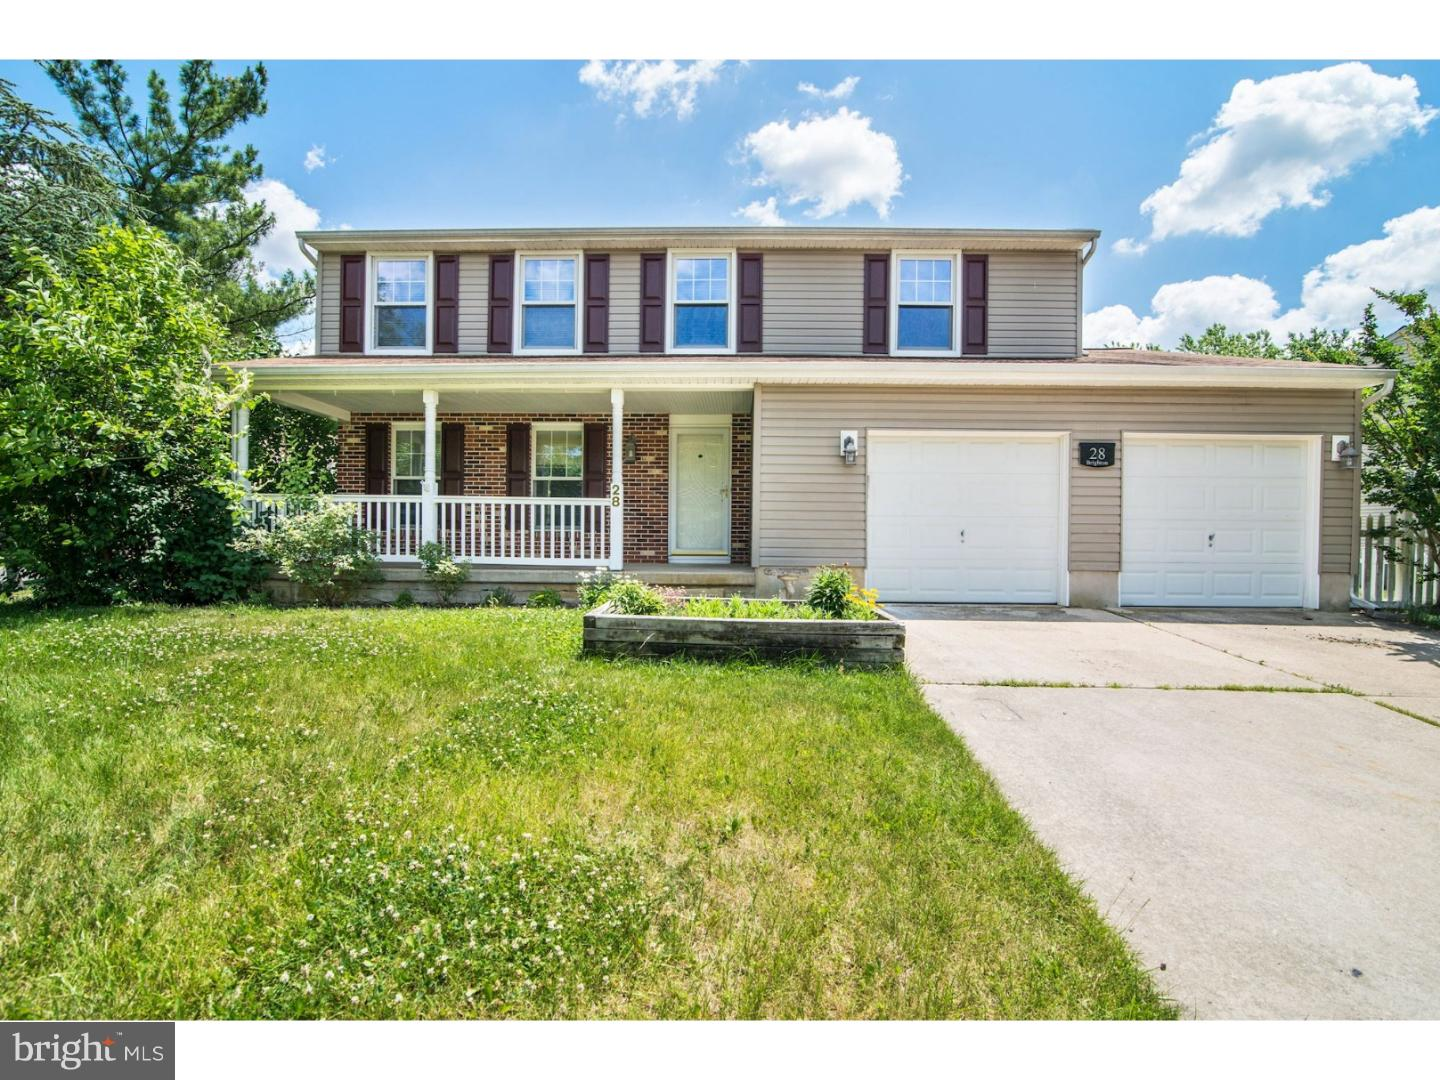 Single Family Home for Sale at 28 BRIGHTON Drive Evesham Twp, New Jersey 08053 United States